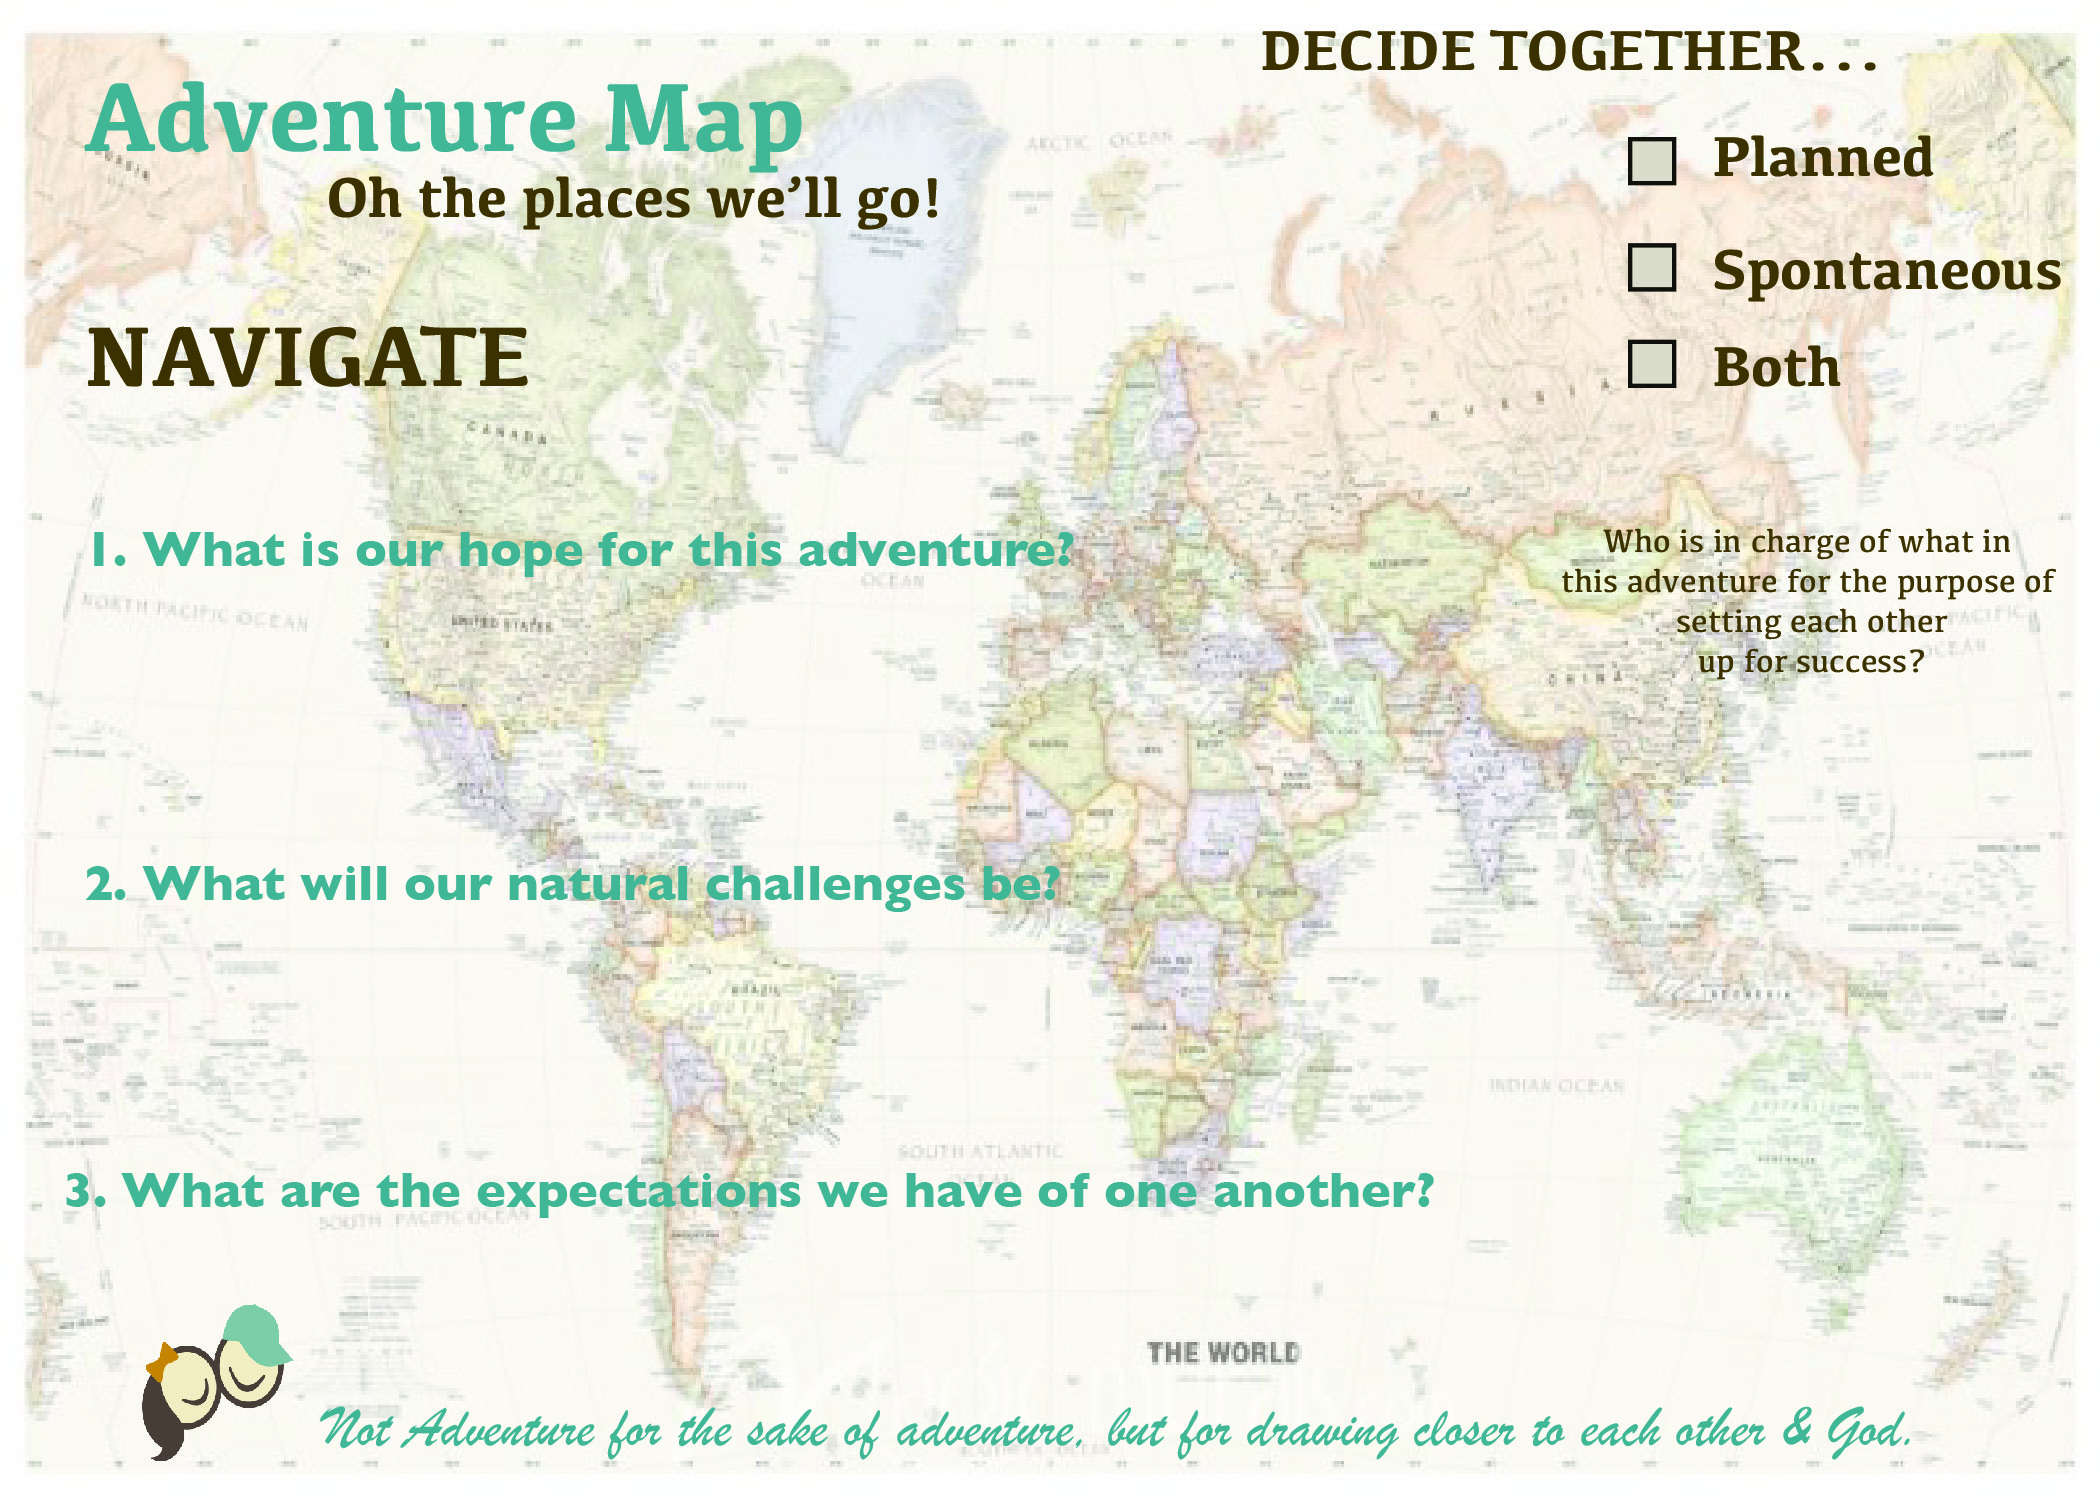 Adventure Map new.jpg